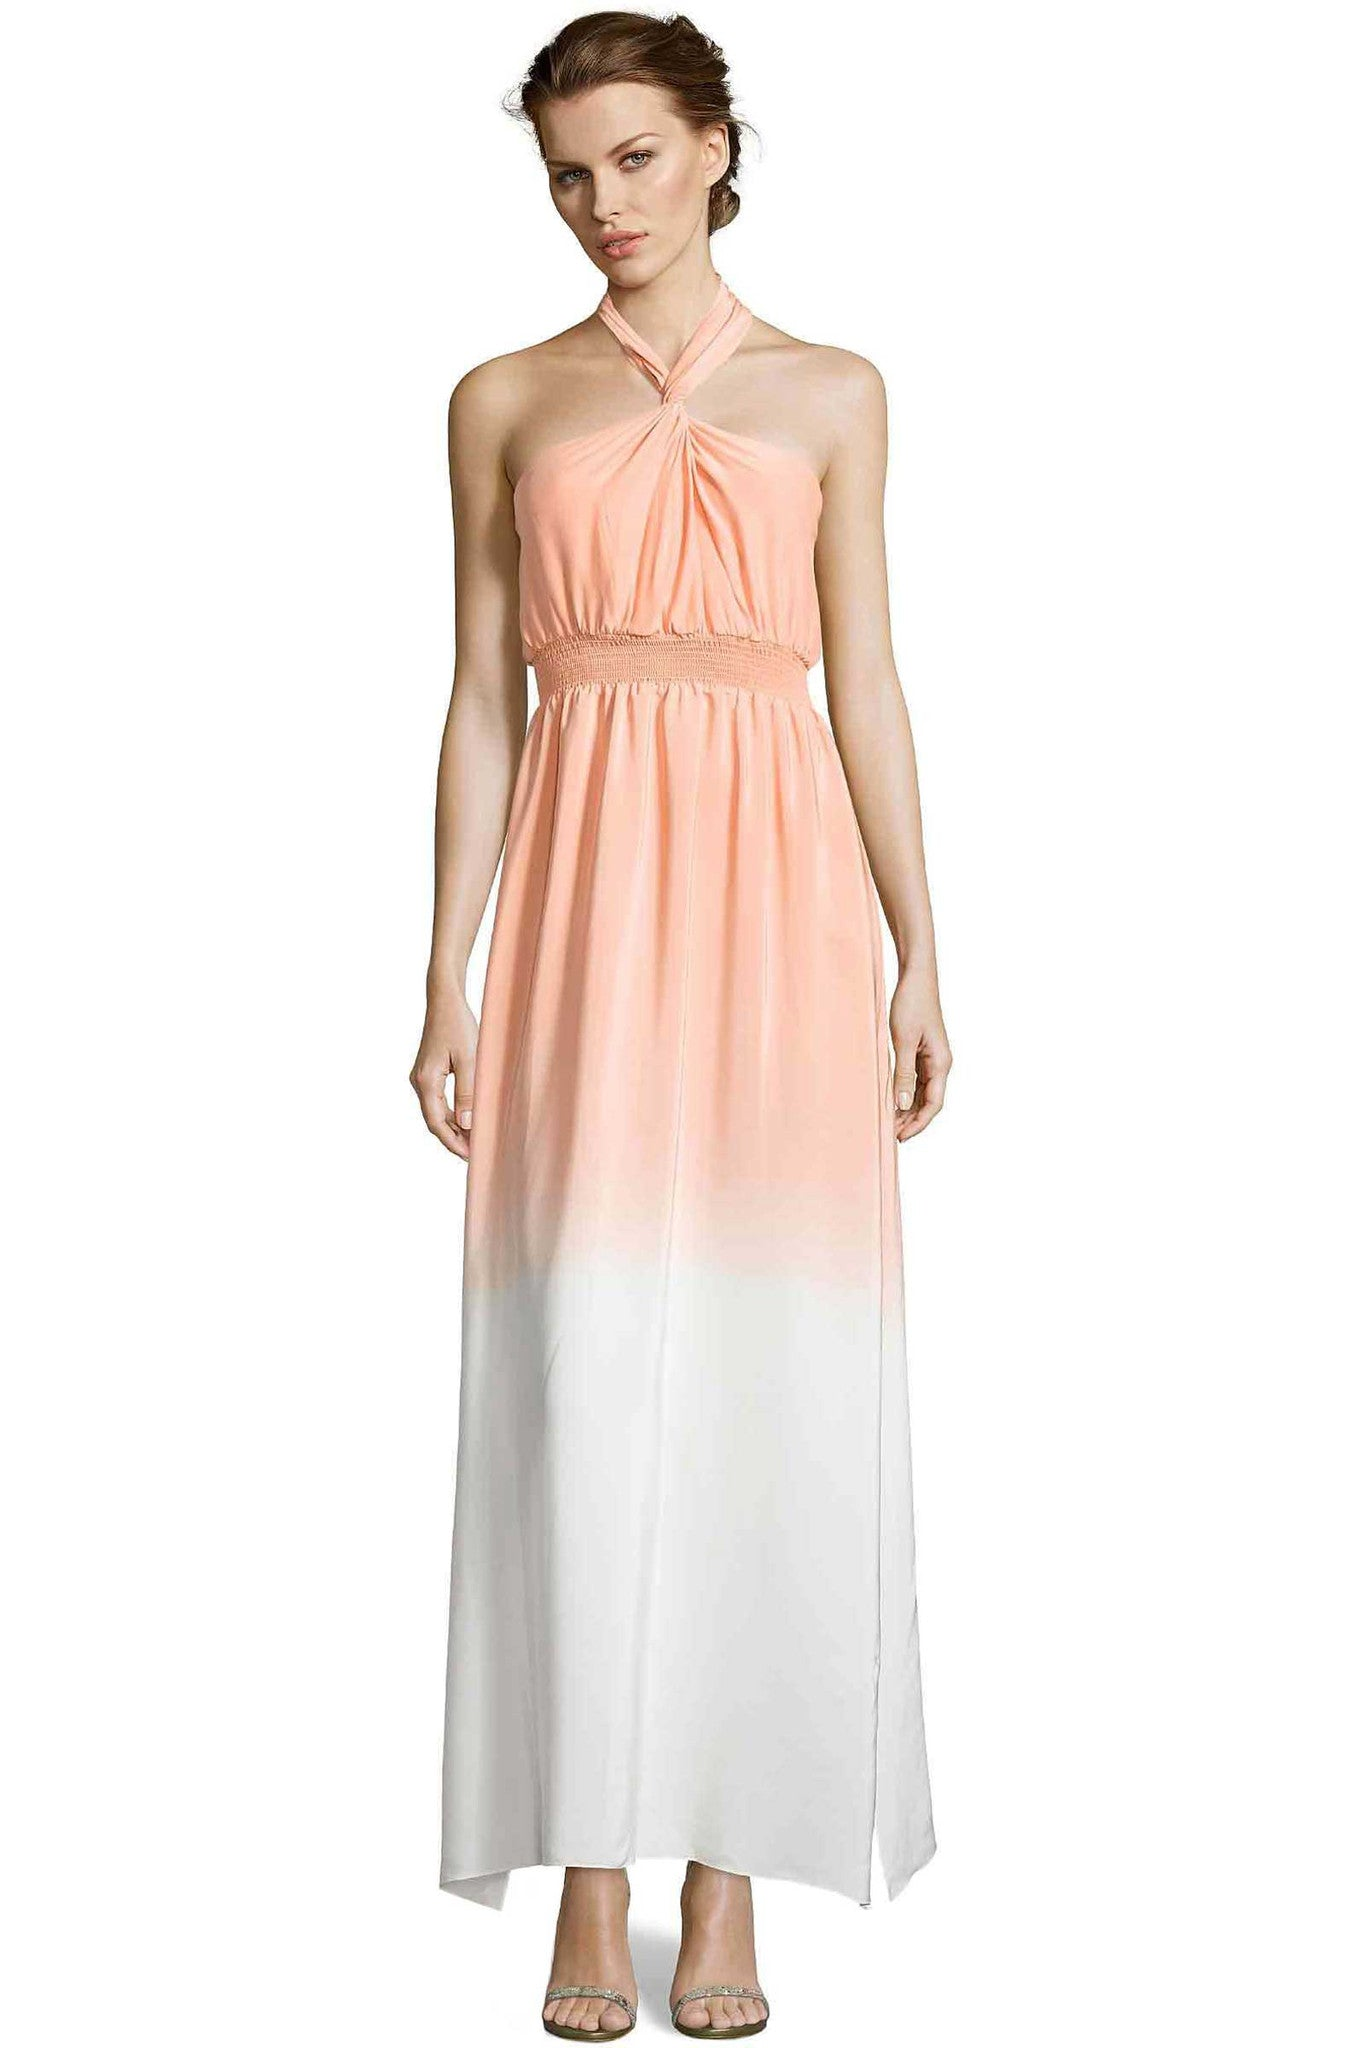 Jay Godfrey Ombre Orange Halter Dress - Front View